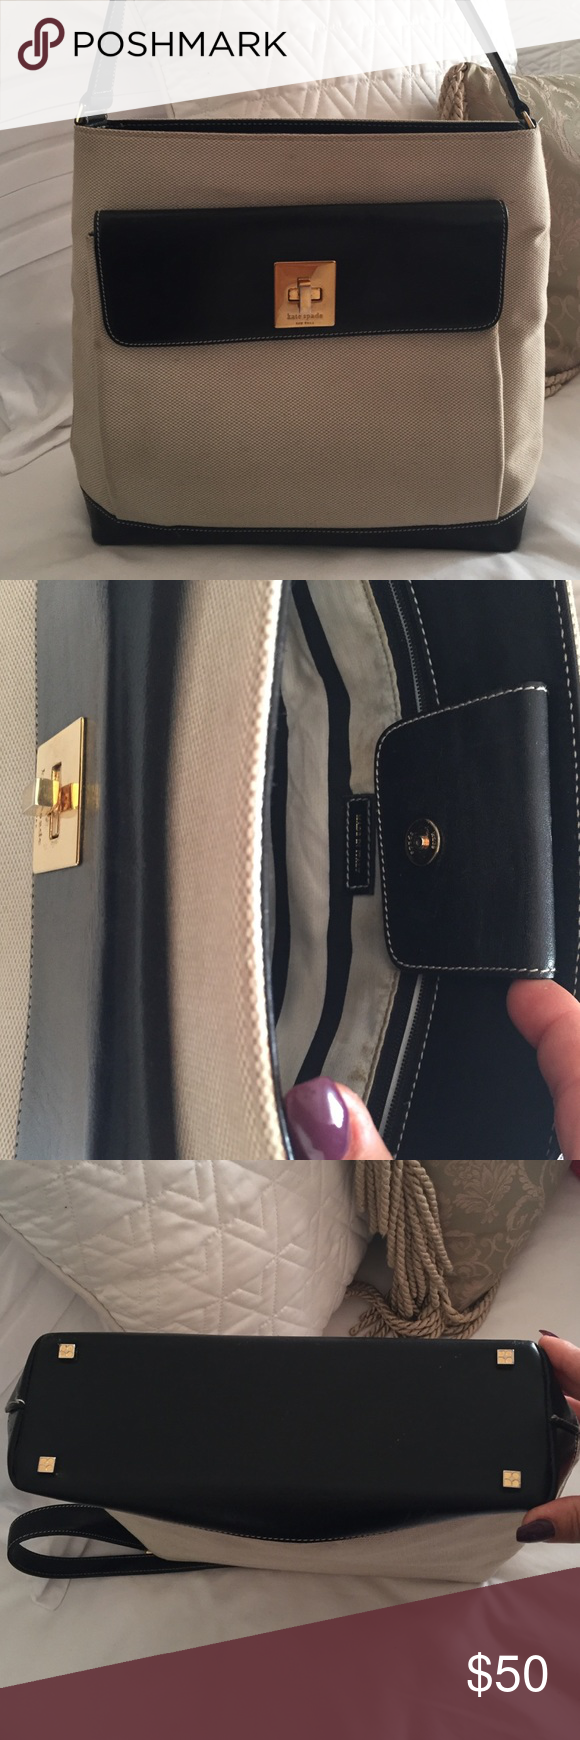 Kate Spade Black/ Cream Single Handle Handbag Very chic vintage Kate Spade single handle handbag in very good condition, just some normal wear and tear. Light scratches on leather, only at the bottom. Stands on its own. kate spade Bags Satchels